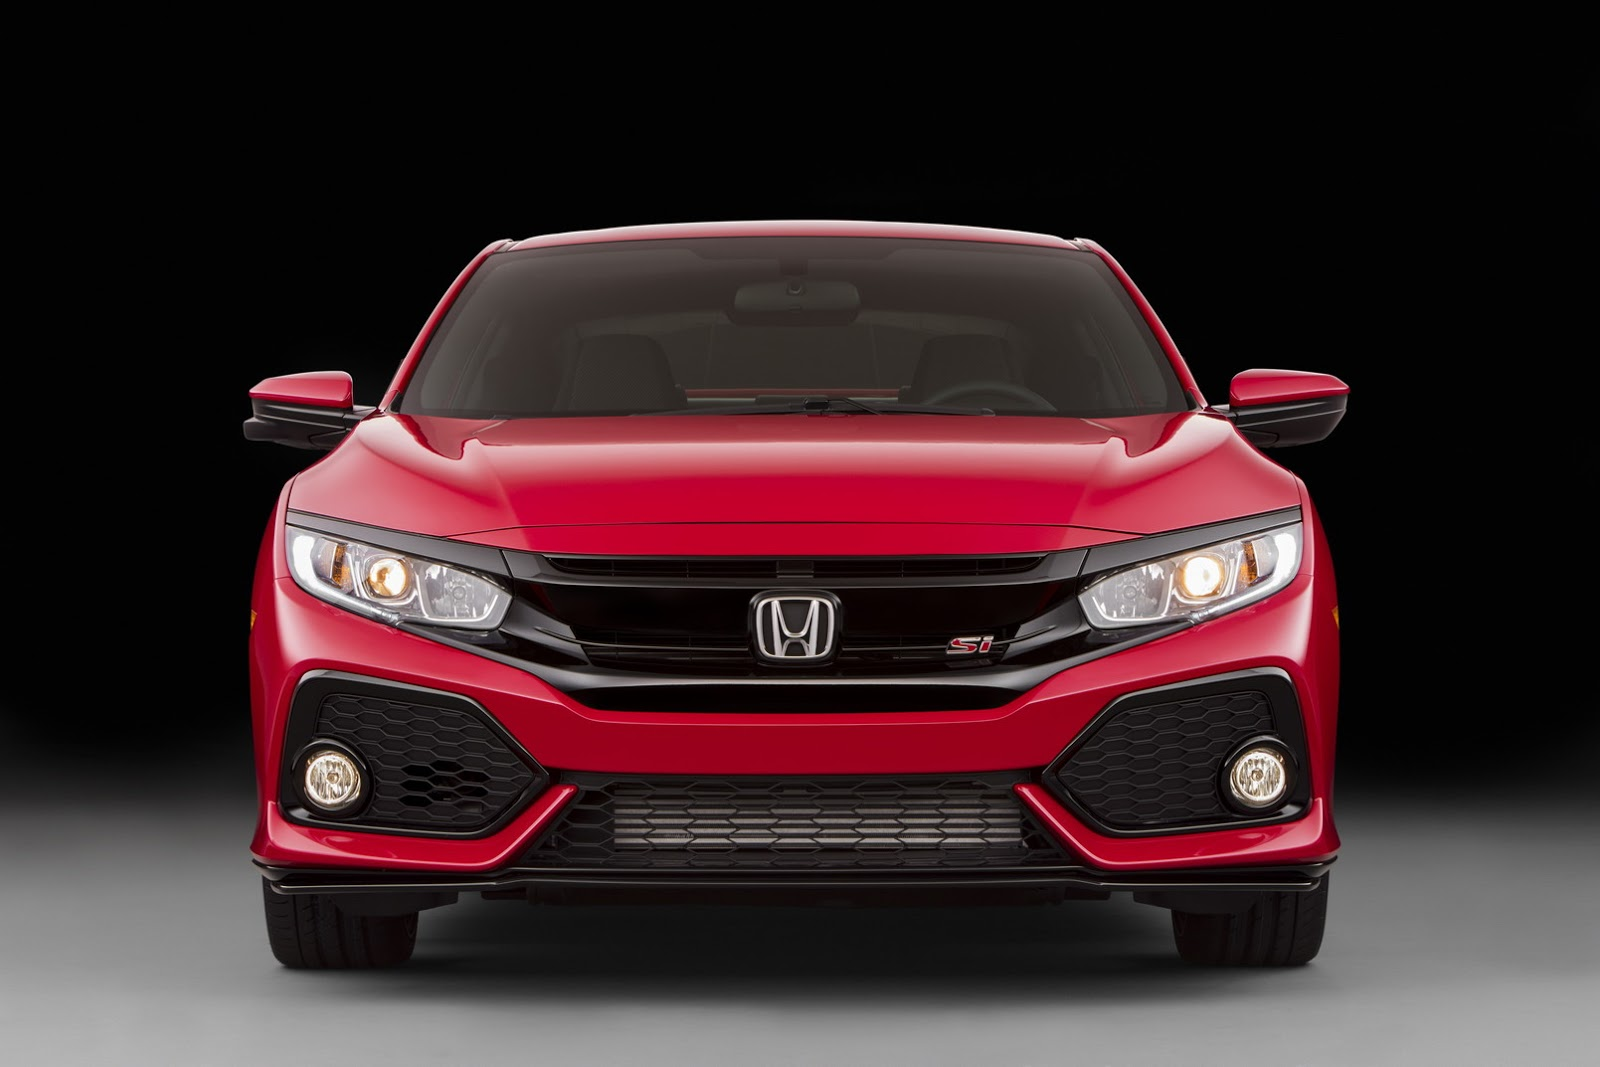 2017 Honda Civic Si Revealed With 1.5-Liter Turbo Engine ...